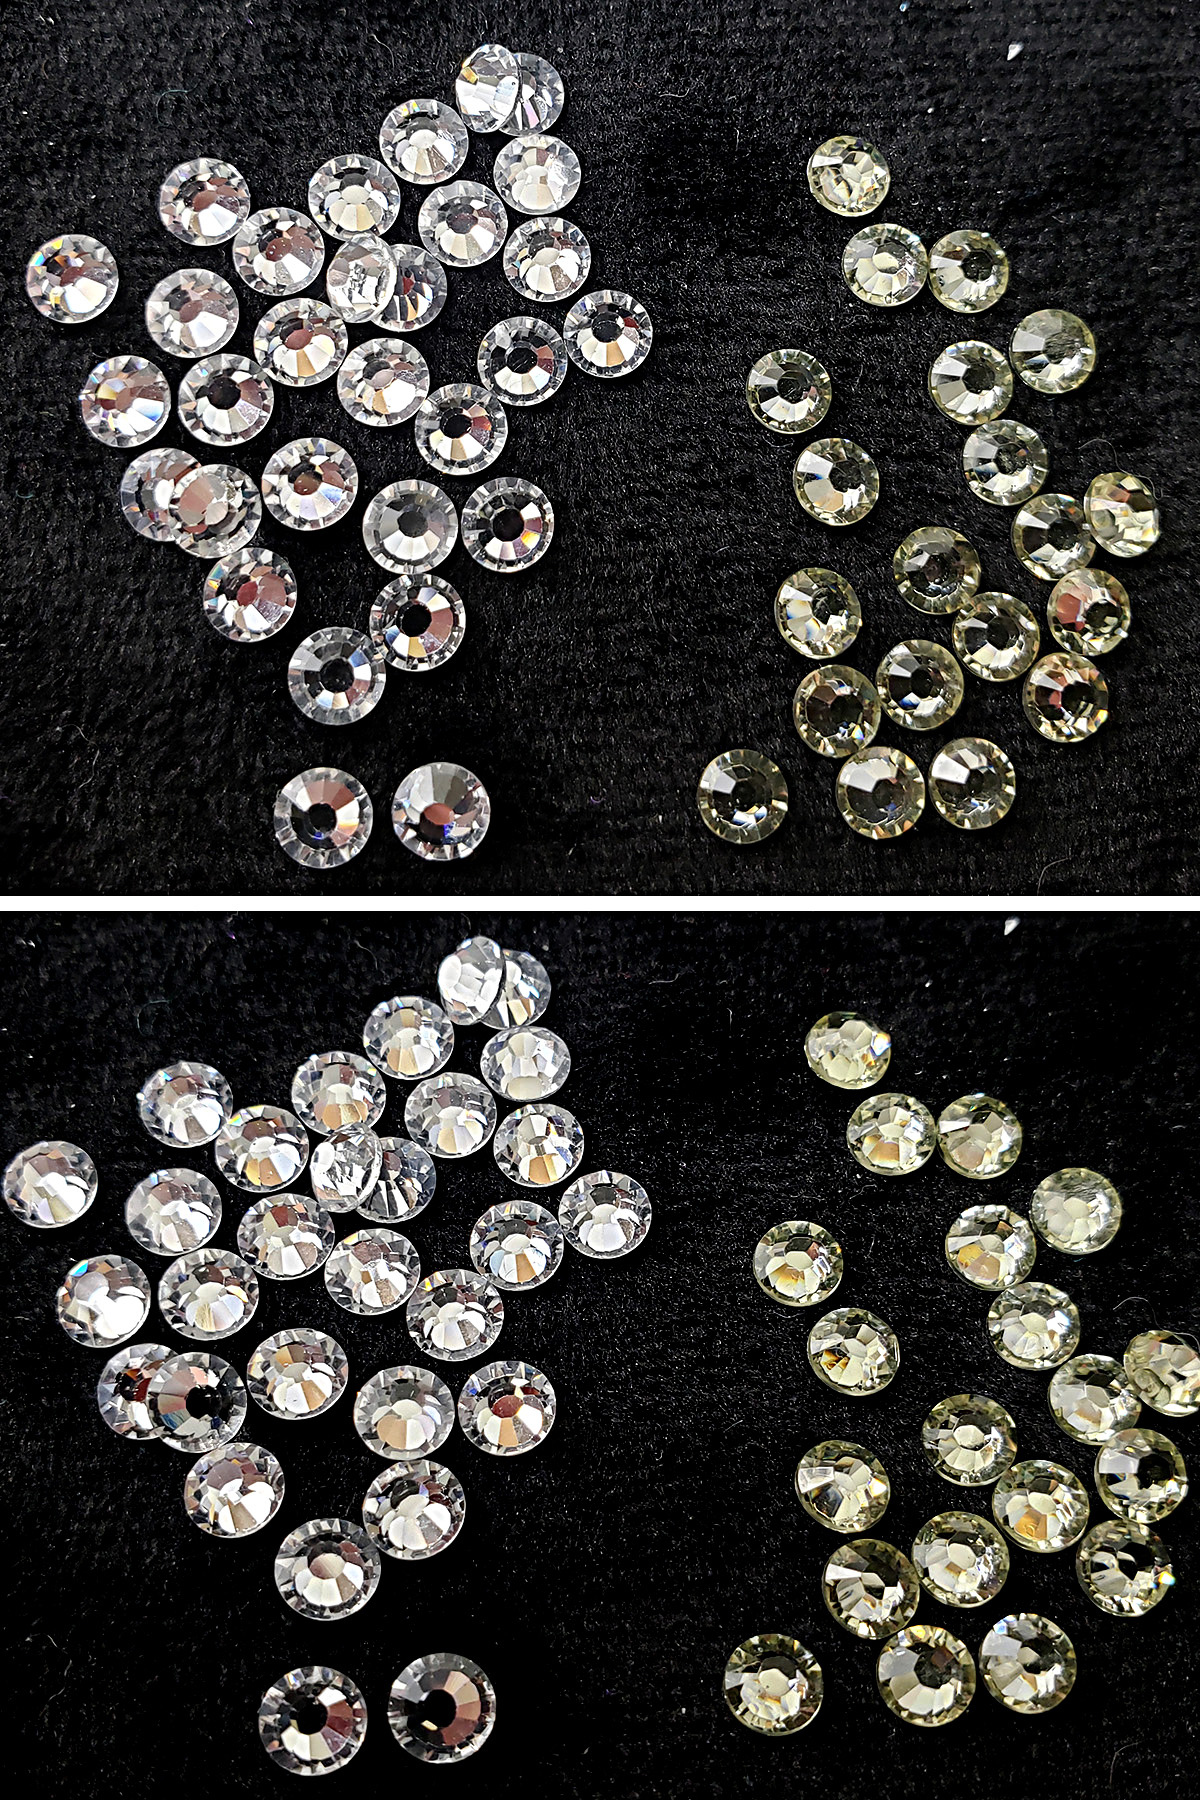 A two part compilation image comparing two different types of clear rhinestones.